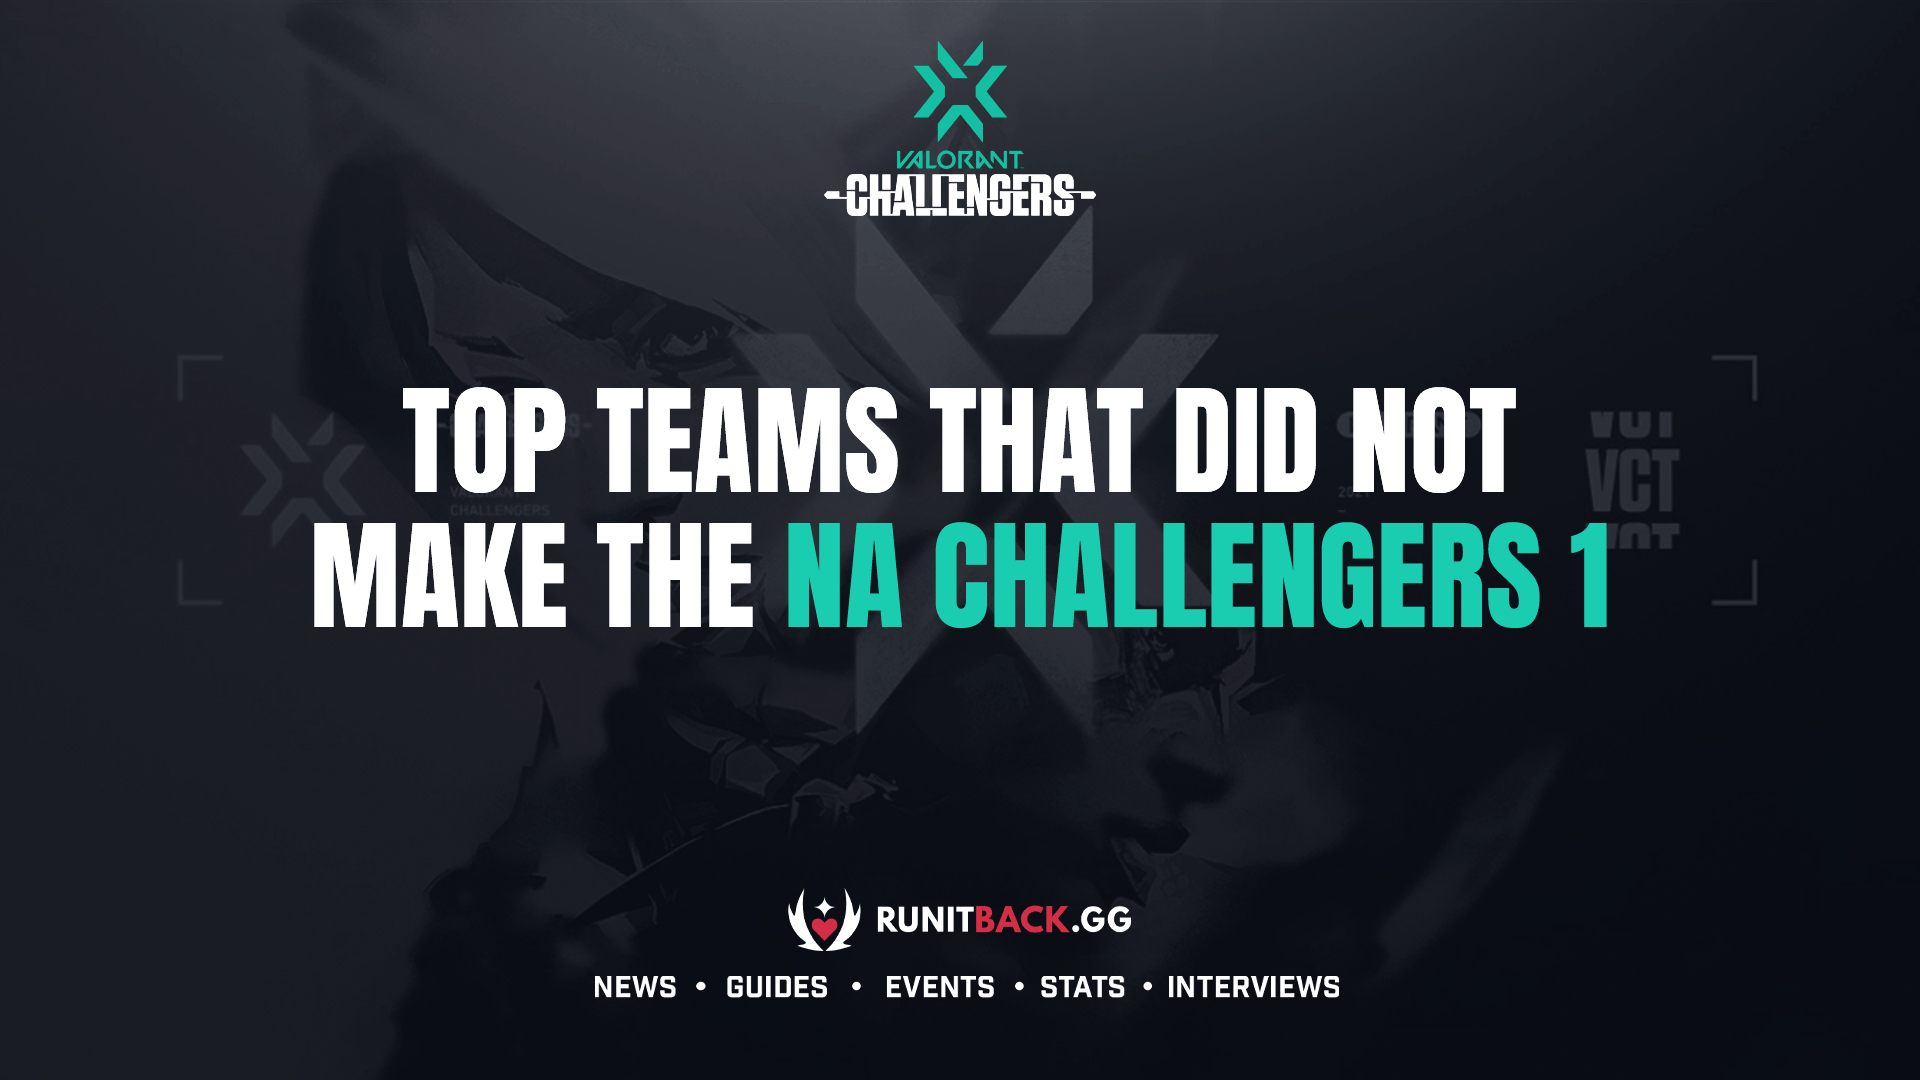 Top teams that did not make the NA Challengers 1 RO16